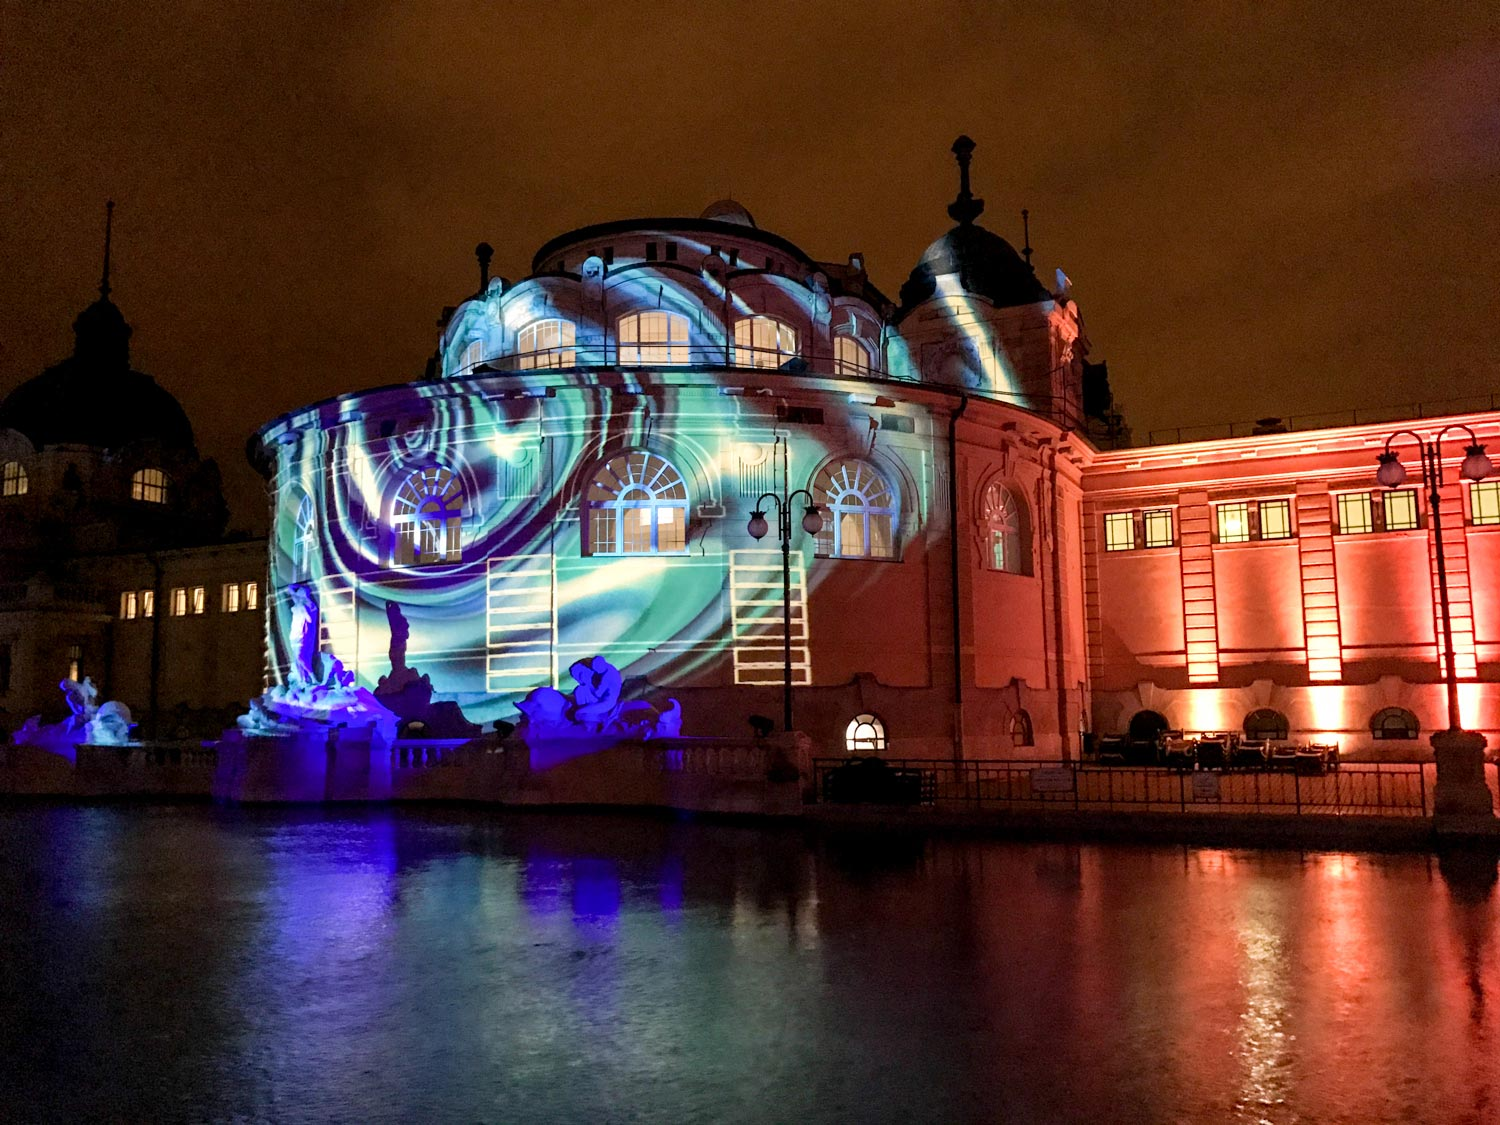 Budapest Pool Party light show